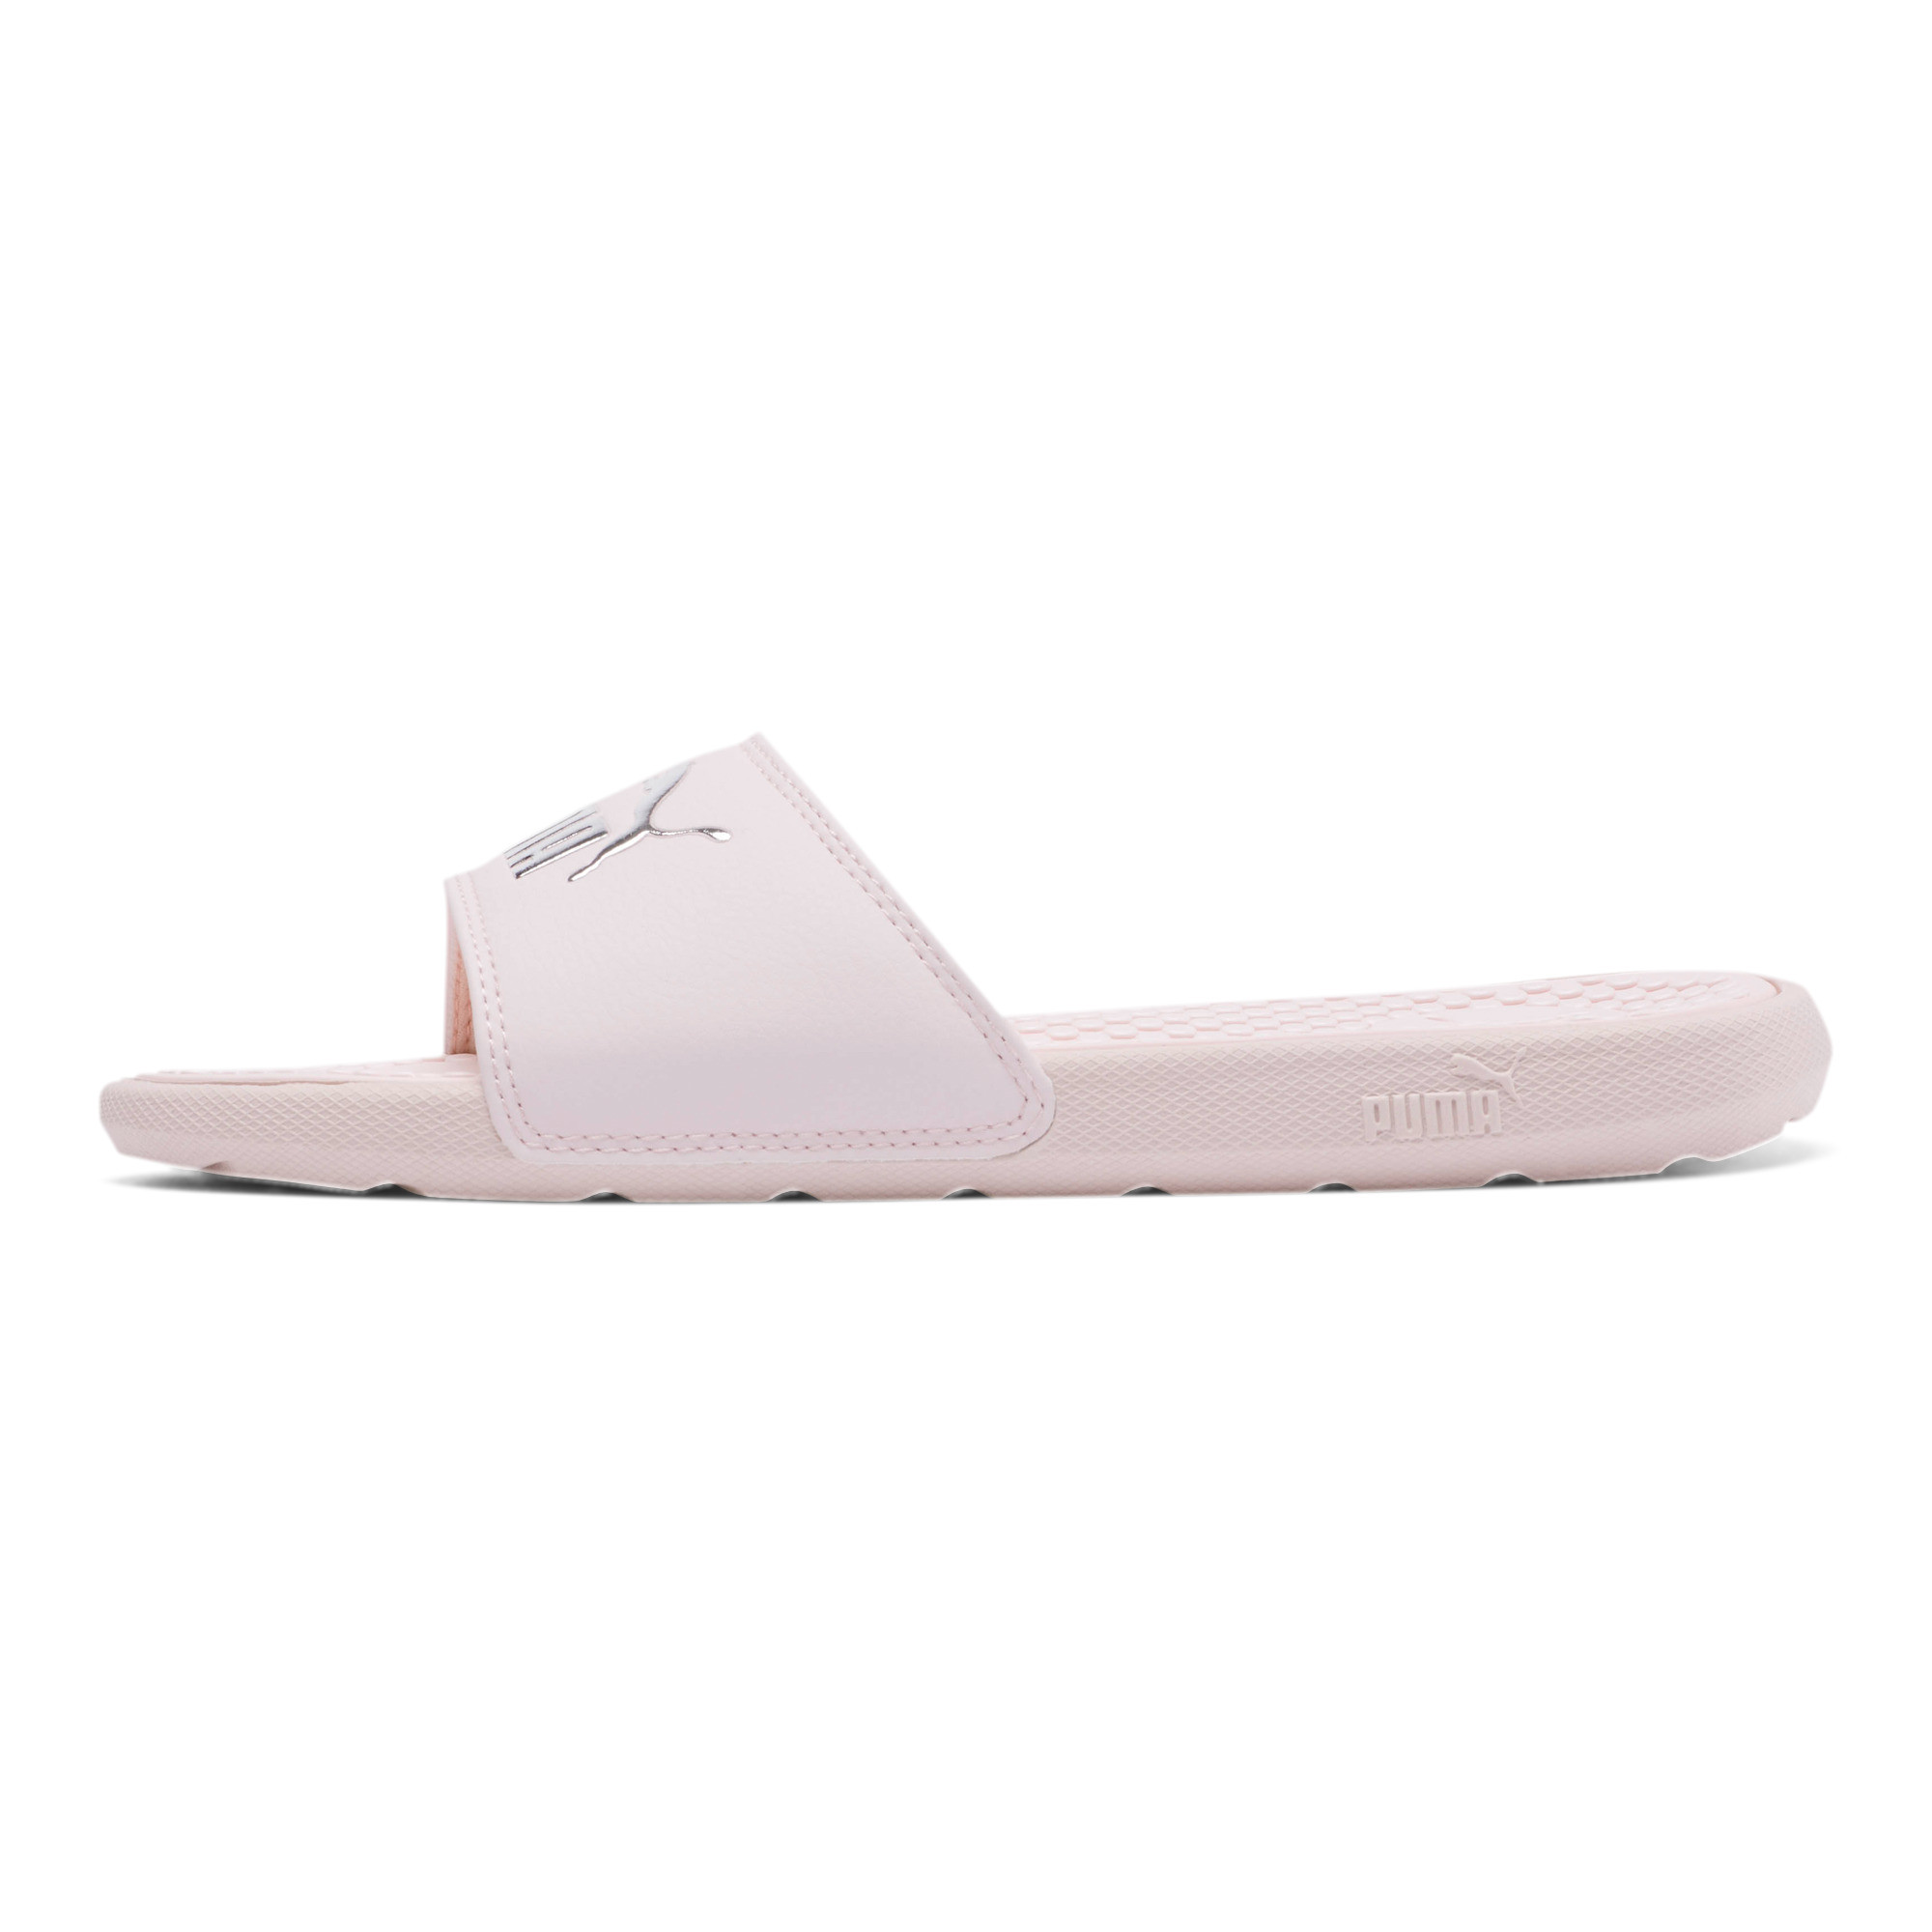 PUMA-Women-039-s-Cool-Cat-Slides thumbnail 16